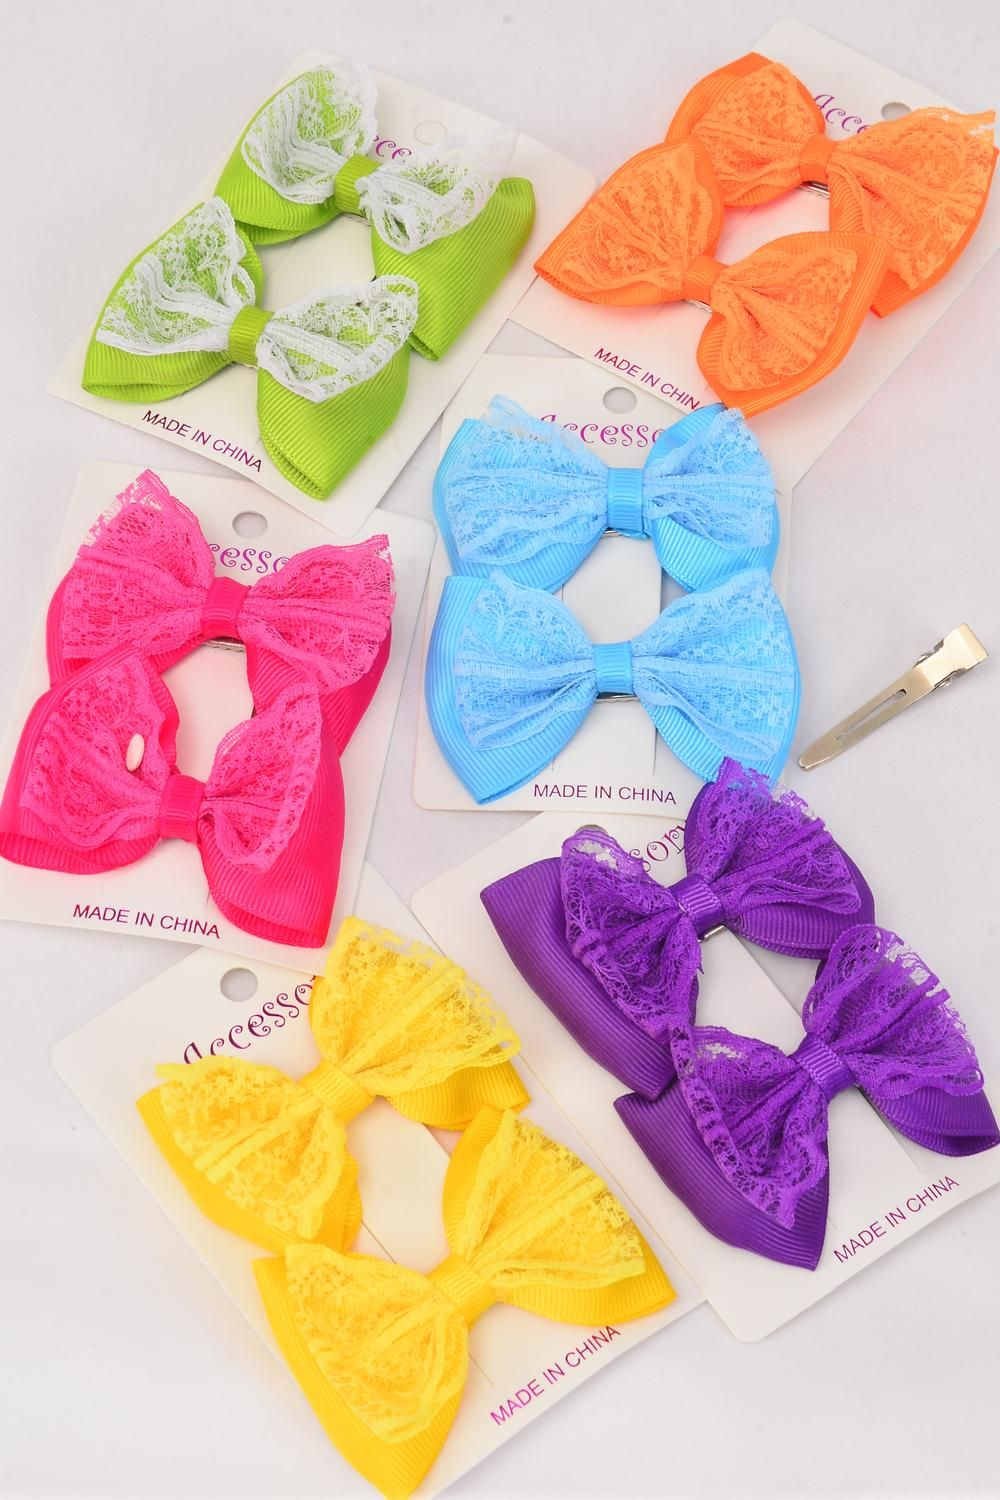 "Hair Bow 24 pcs Lace Grosgrain Bowtie Citrus/DZ **Citrus** Alligator Clip,Bow-3x 2"" Wide,2 of each Color Asst,2 pcs per card,12 card=Dozen,Display Card & UPC Code,PVC Box"